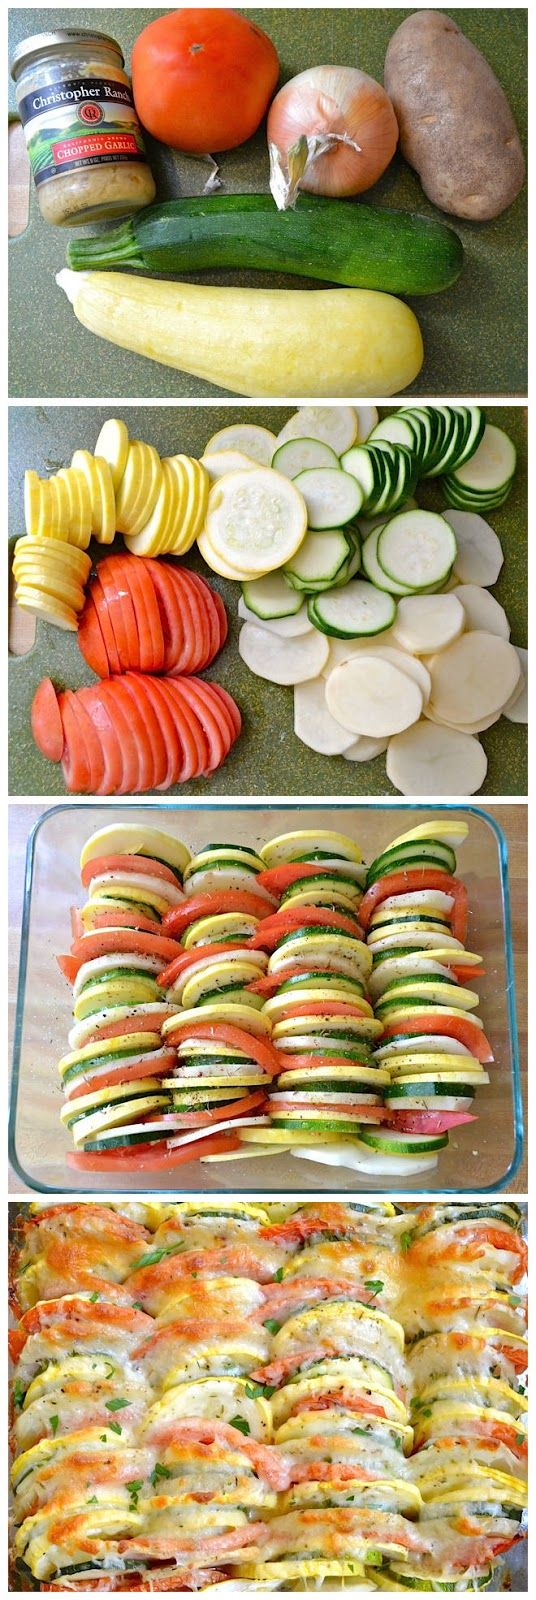 This looks delicious and easy!